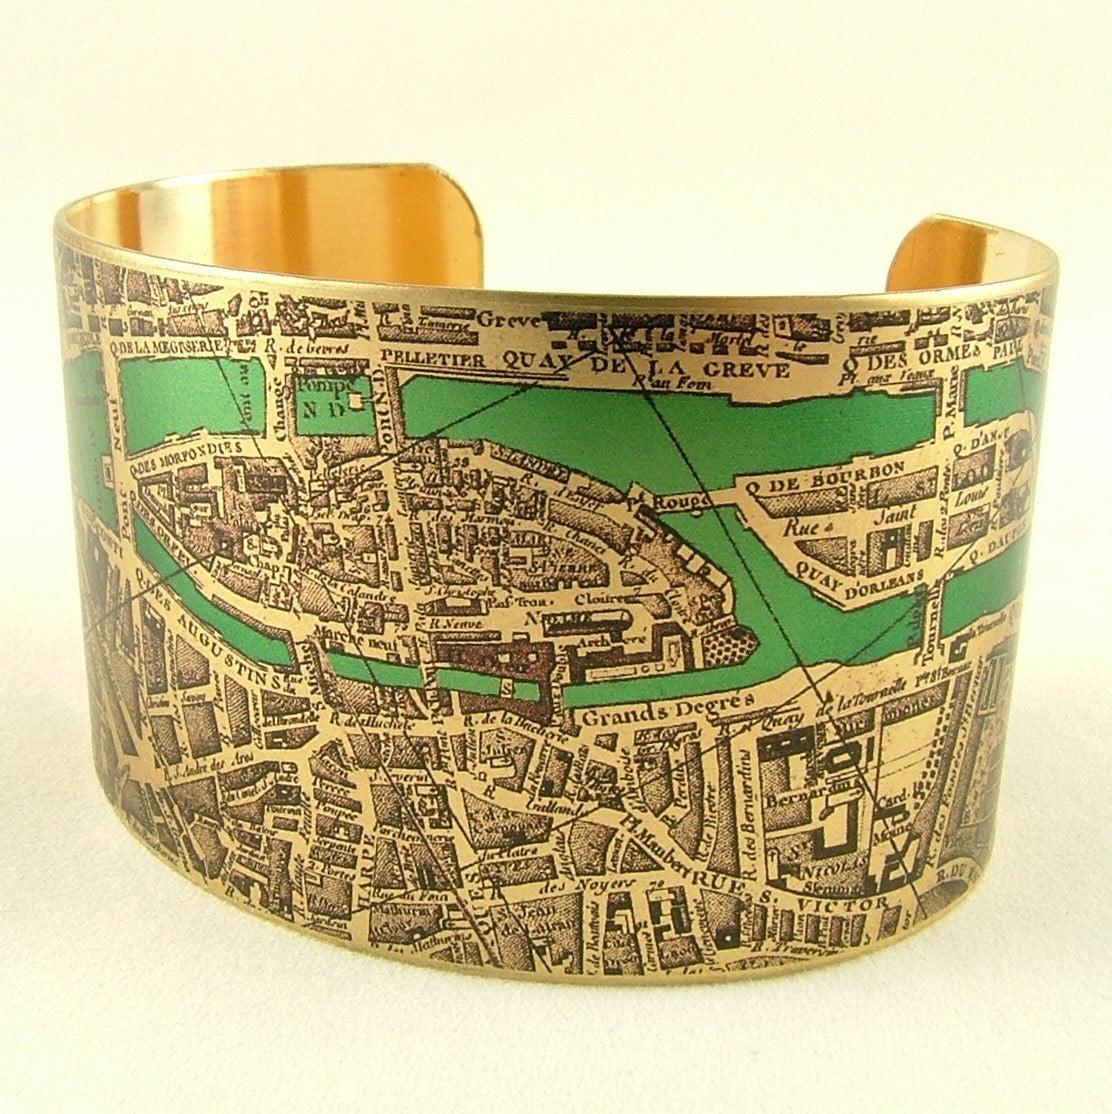 Paris Street Map Cuff Bracelet